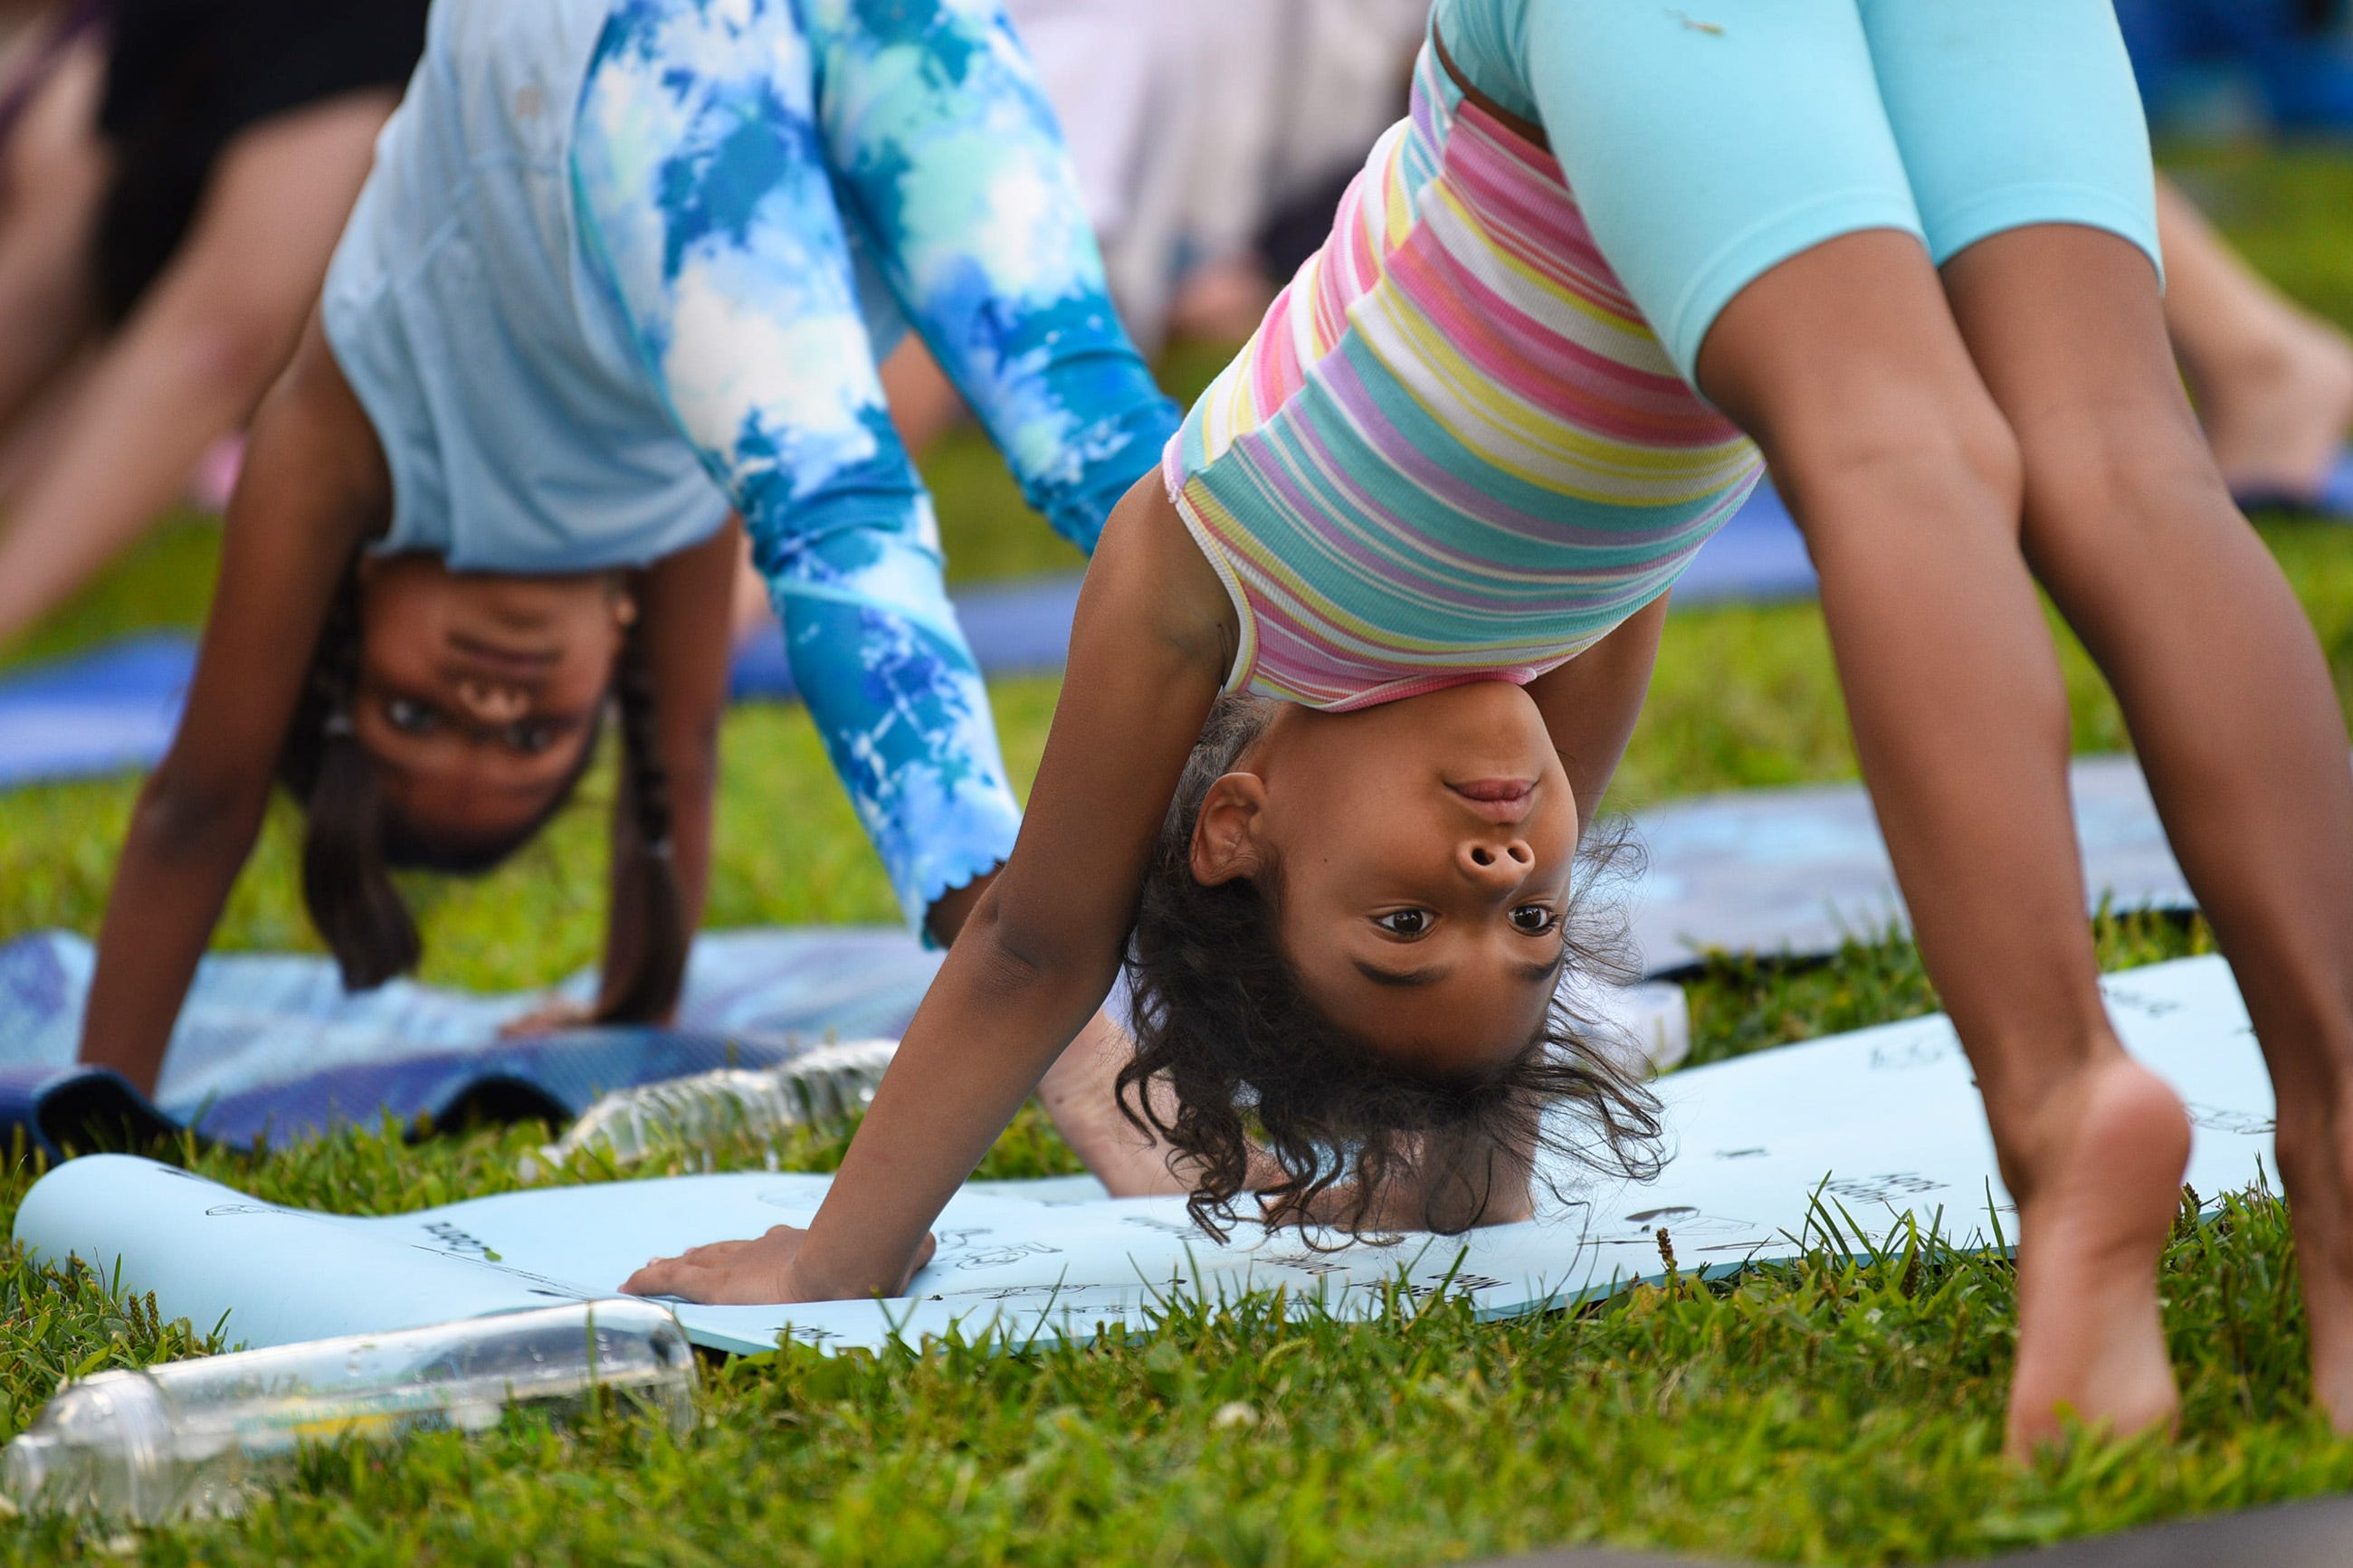 Val, left, 6, of Garfield, and Bri, right, 6, of Hackensack, follow the instructions from yoga instructor Melissa Varjan during sunset yoga in Atlantic Street Park just outside of the Hackensack Performing Arts Center on 08/02/21.